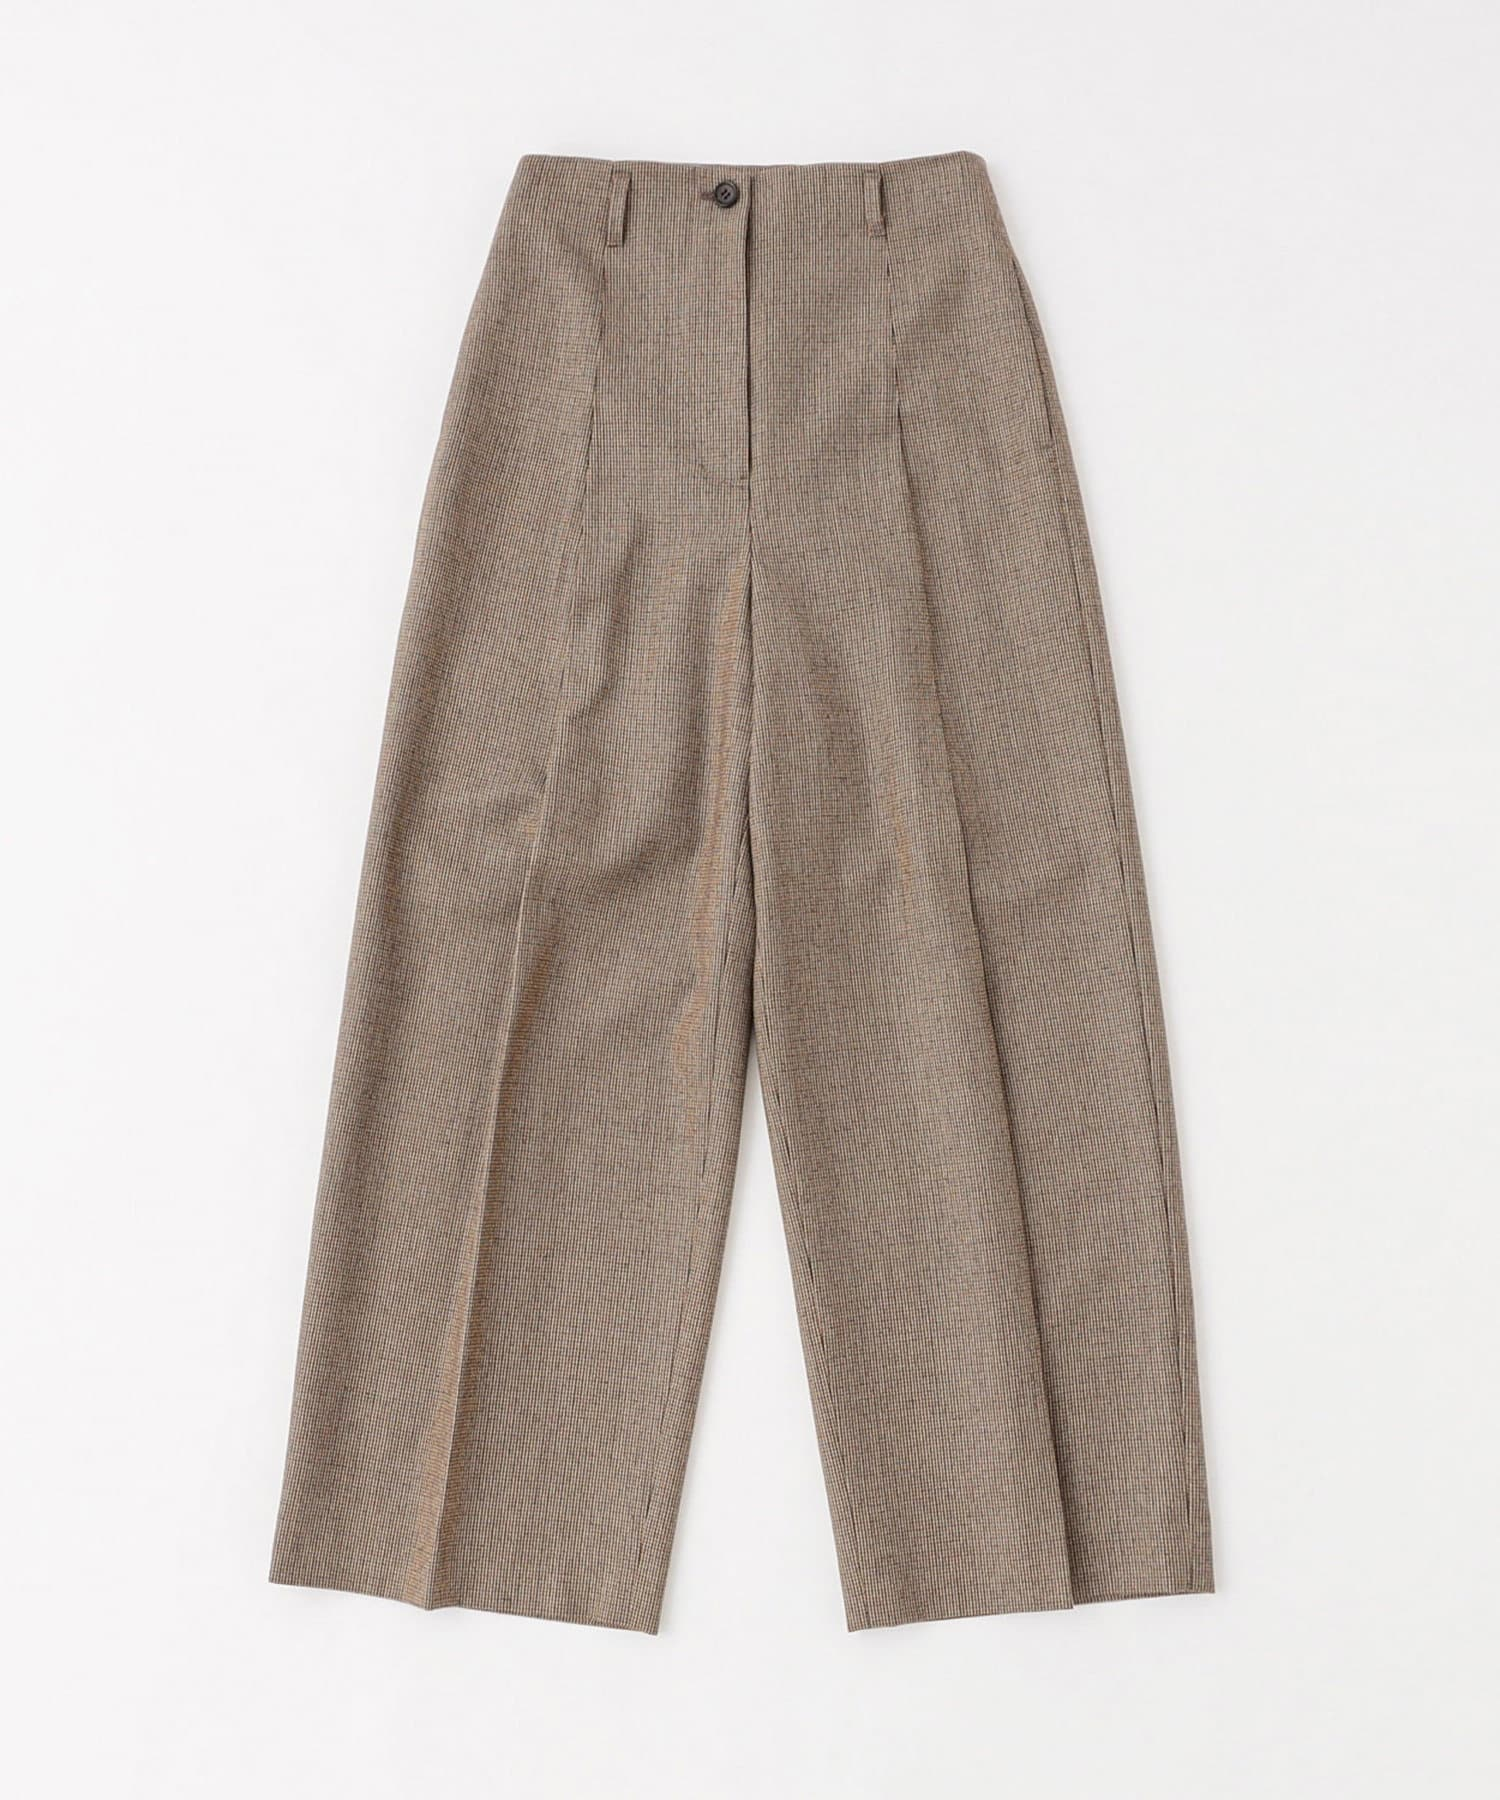 BLOOM&BRANCH(ブルームアンドブランチ) Phlannèl / womens Wool Wide Trousers